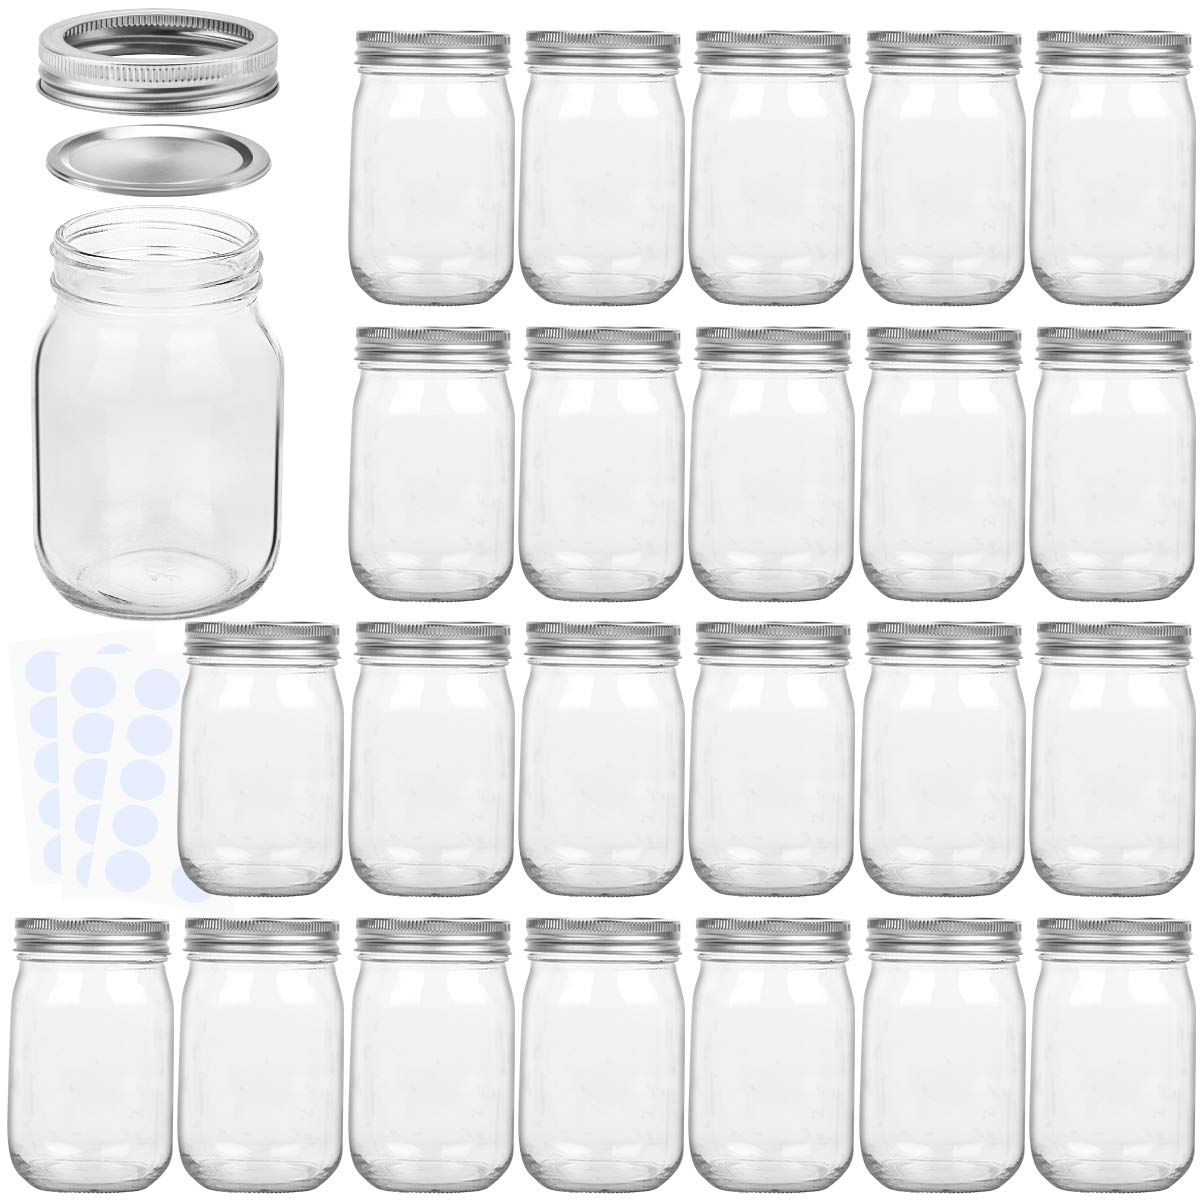 KAMOTA Mason Jars 12OZ With Regular Lids and Bands, Ideal for Jam, Honey, Wedding Favors, Shower Favors, Baby Foods, DIY Magnetic Spice Jars, 24 PACK, 30 Whiteboard Labels Included